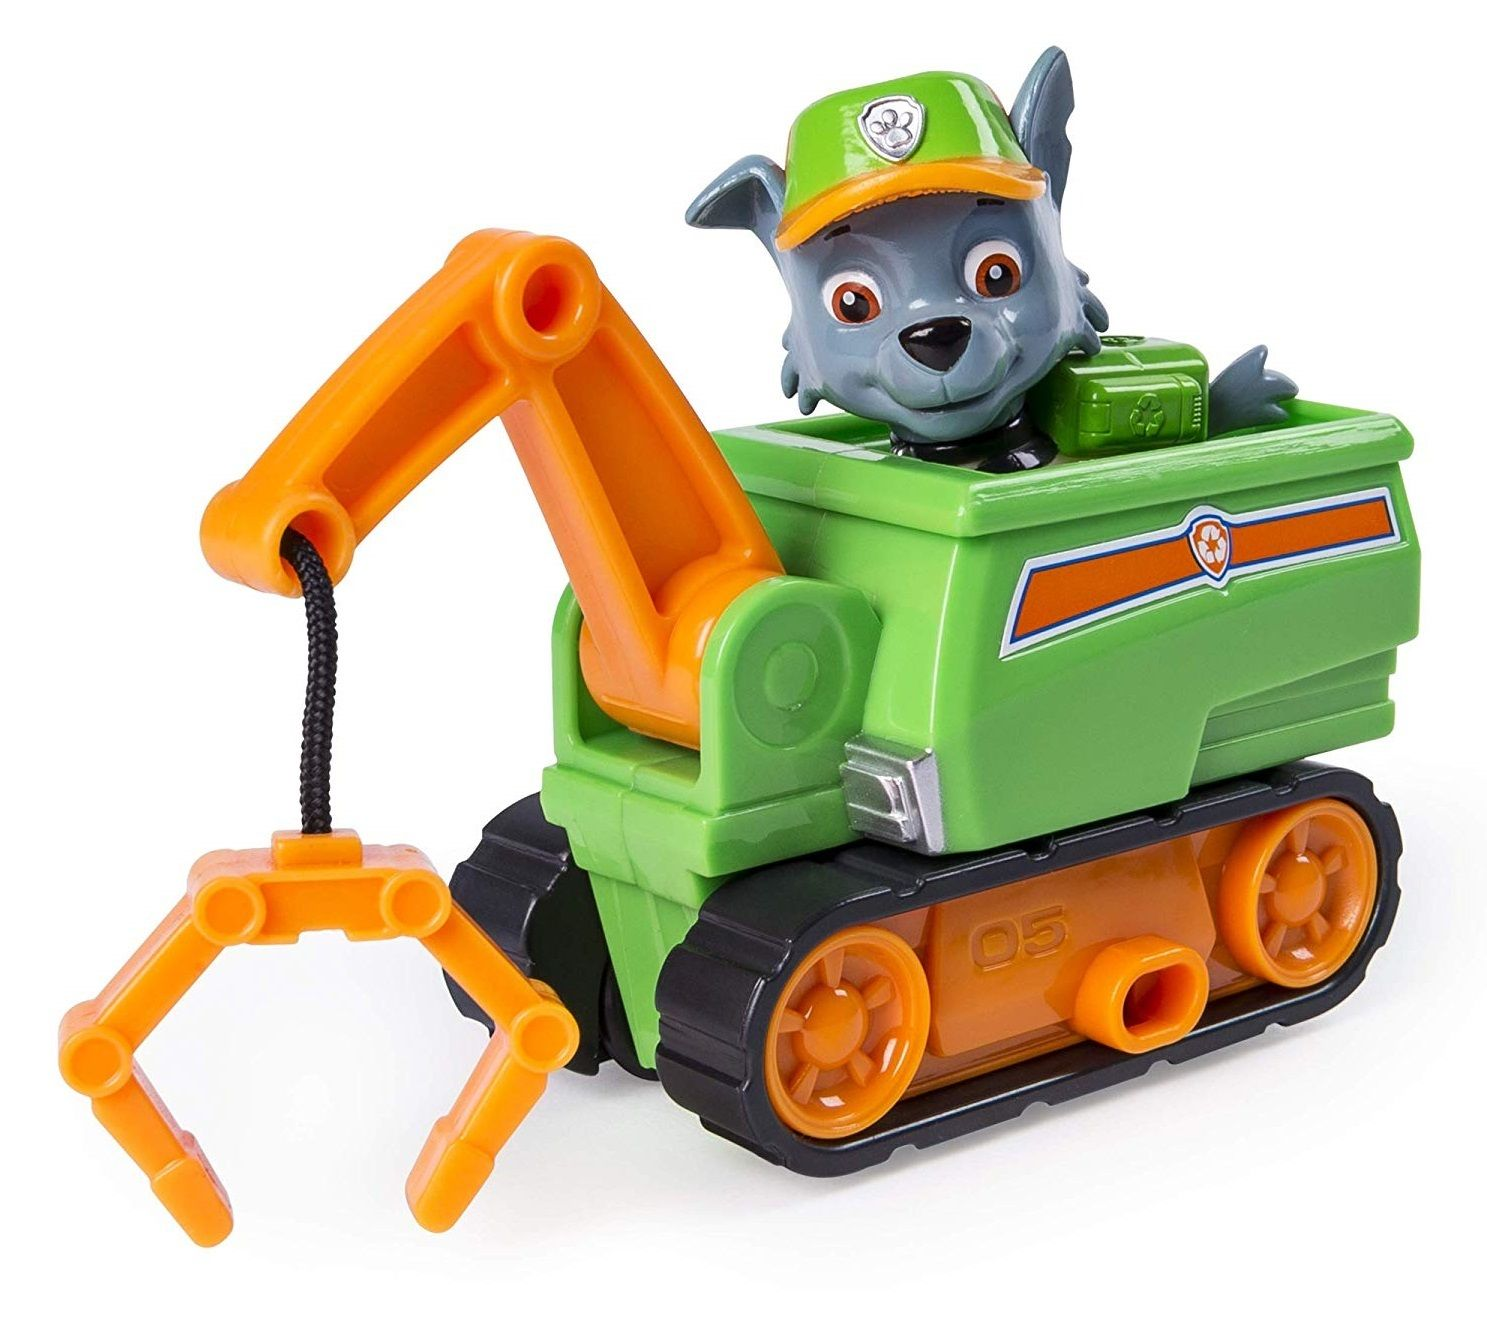 Paw Patrol Rubble/'s Steam Roller Construction Vehicle with Rubble Figure n//a